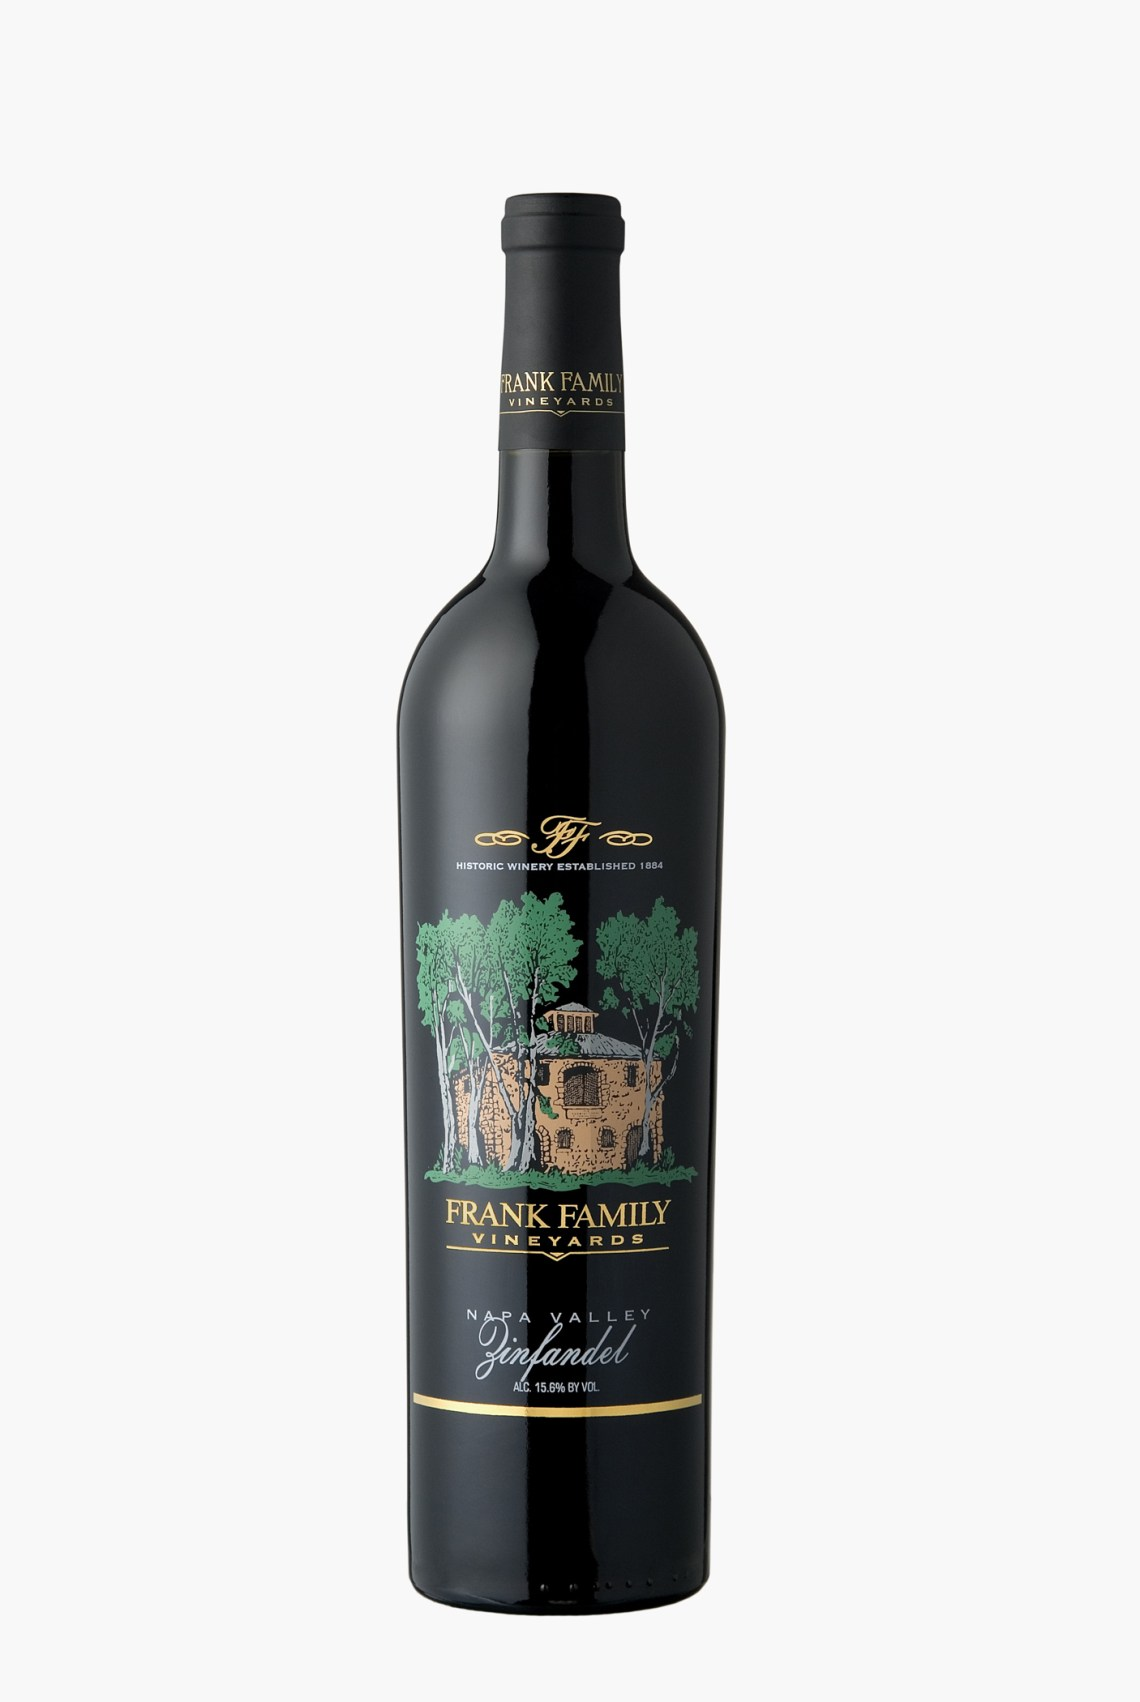 2011 Frank Family Vineyards Zinfandel Napa Valley